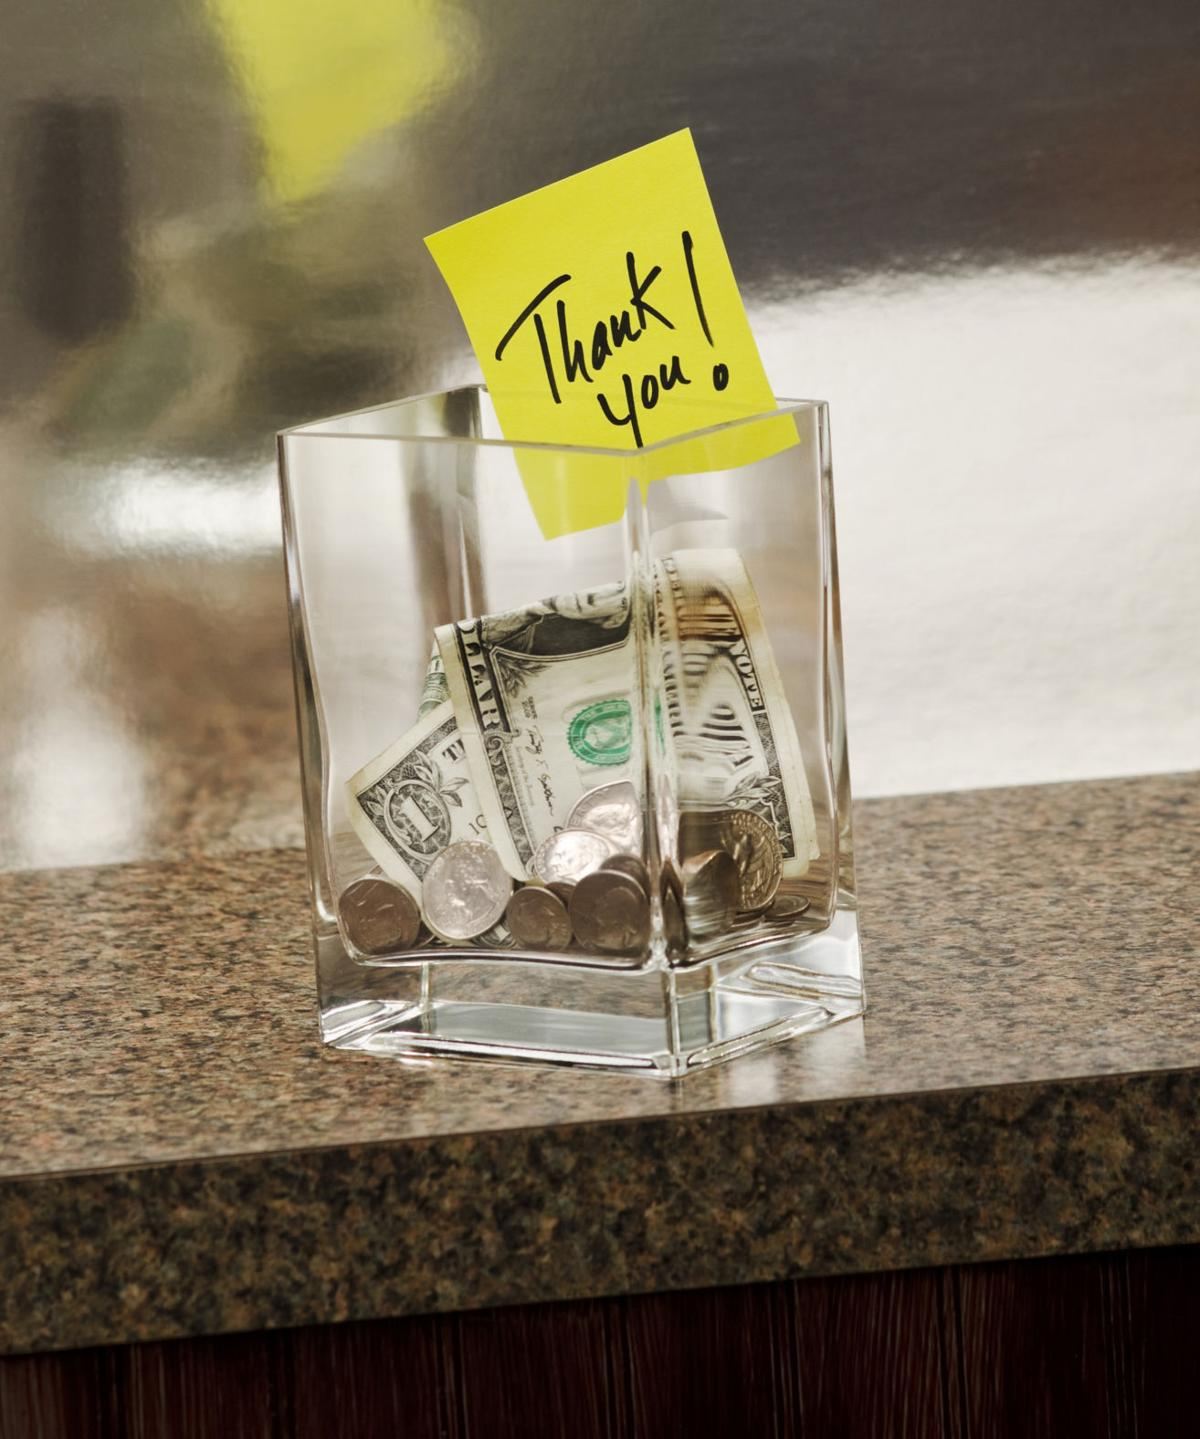 Thank you note in tip jar